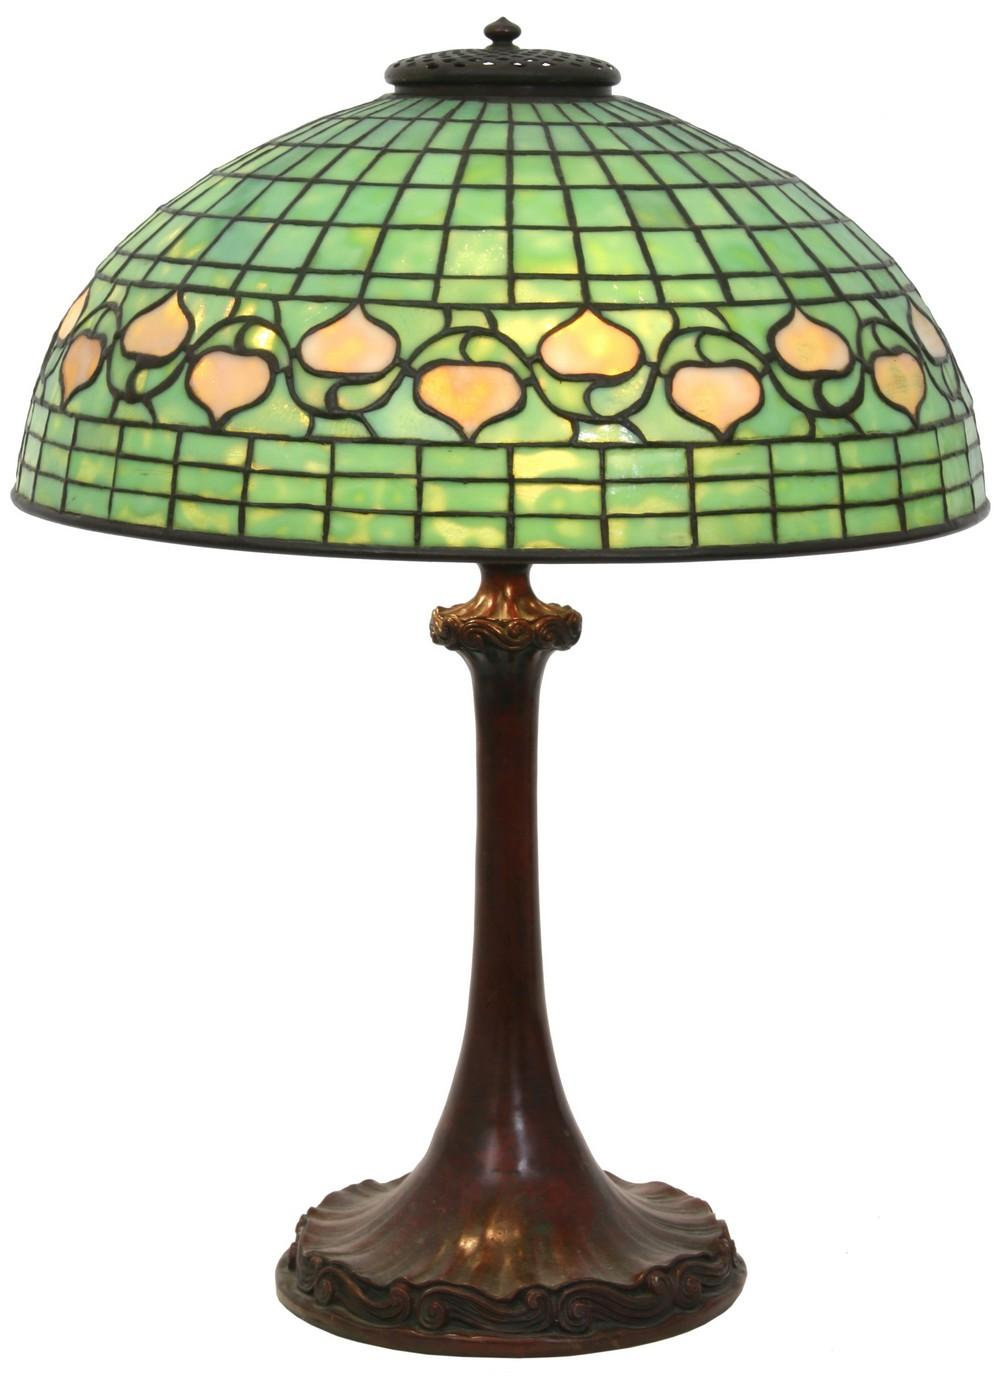 Tiffany Studios Acorn Table Lamp